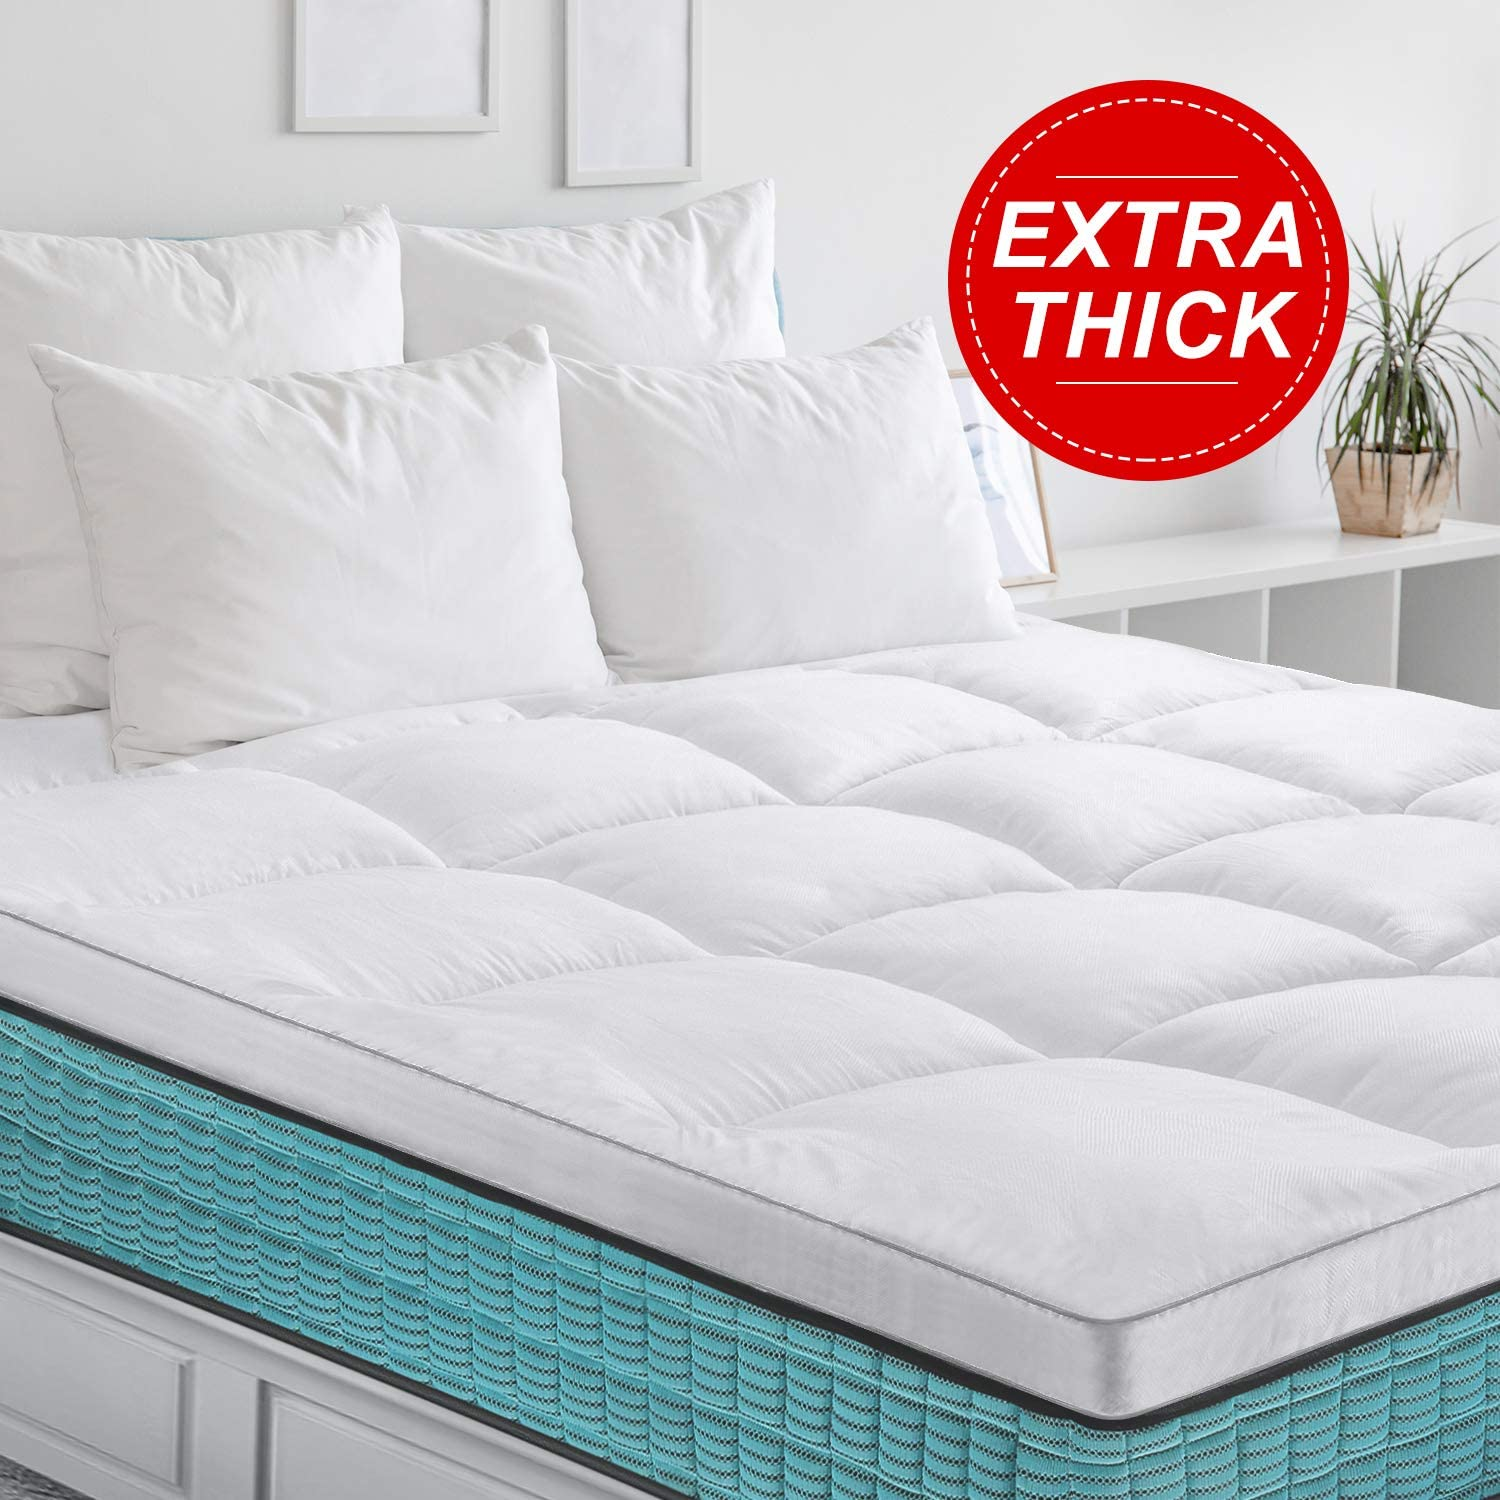 Cooling Bed Topper Plush Microfiber Filled Pillow Top Mattress Pad Cover with 4 Fixed Band BedStory Extra Thick Mattress Topper 2.5inch Twin Size